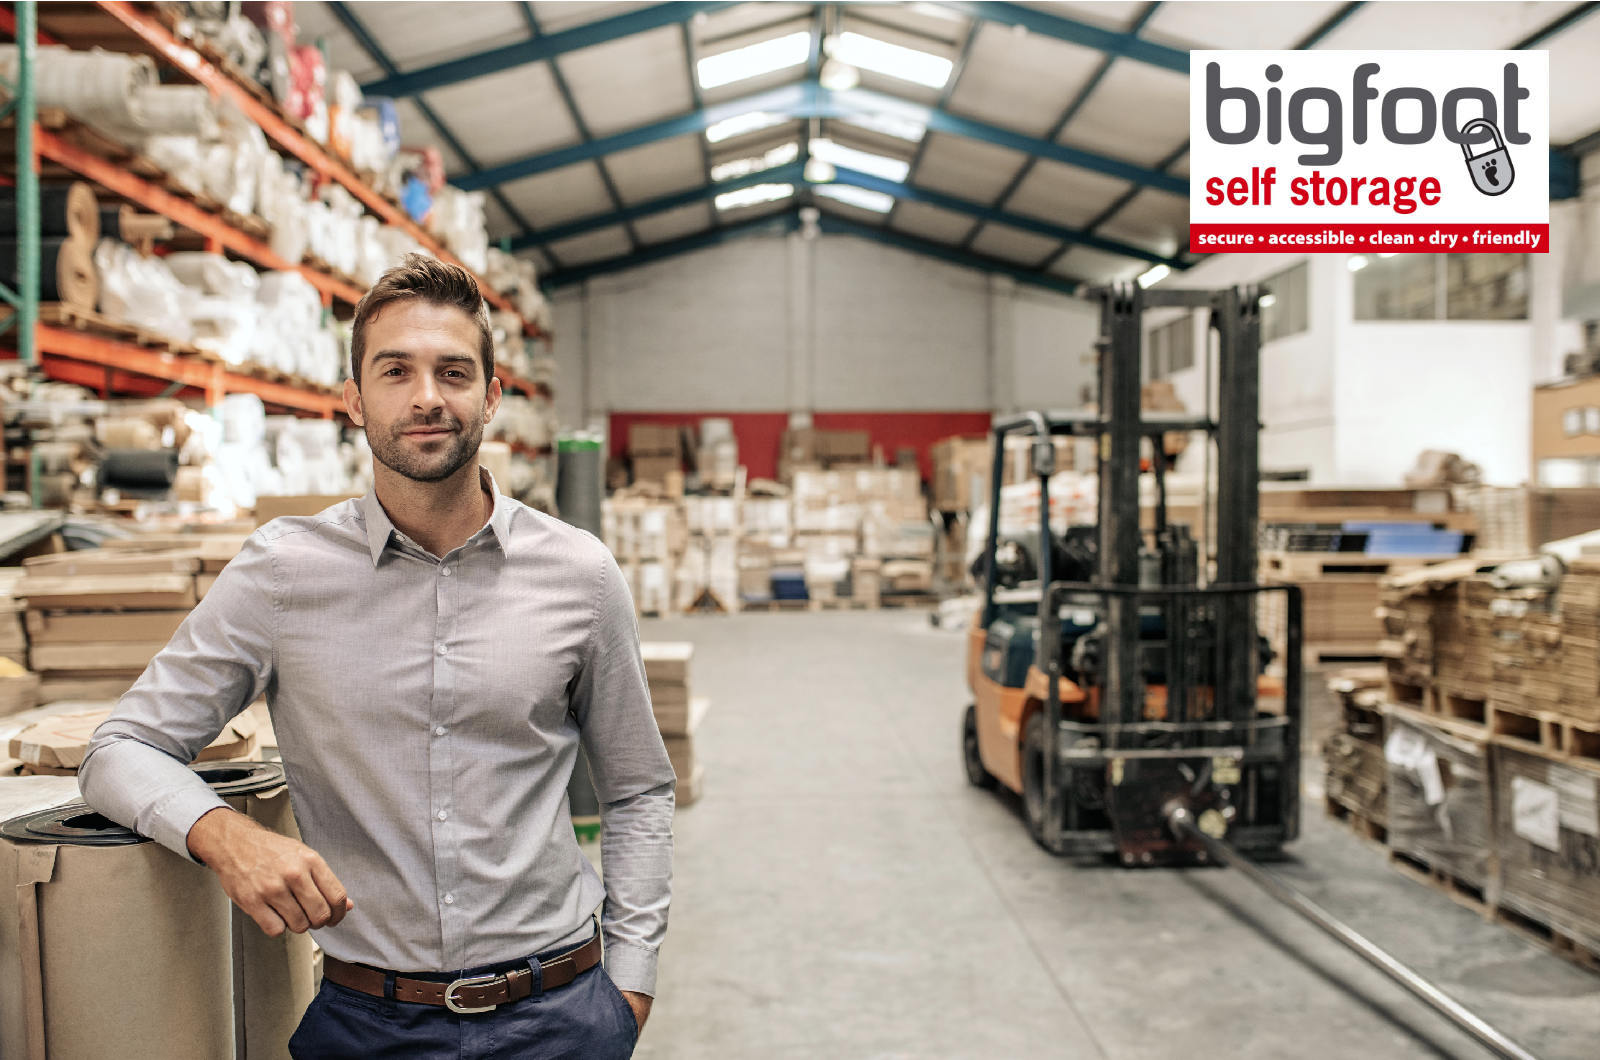 Reasons to use business self storage for your stock